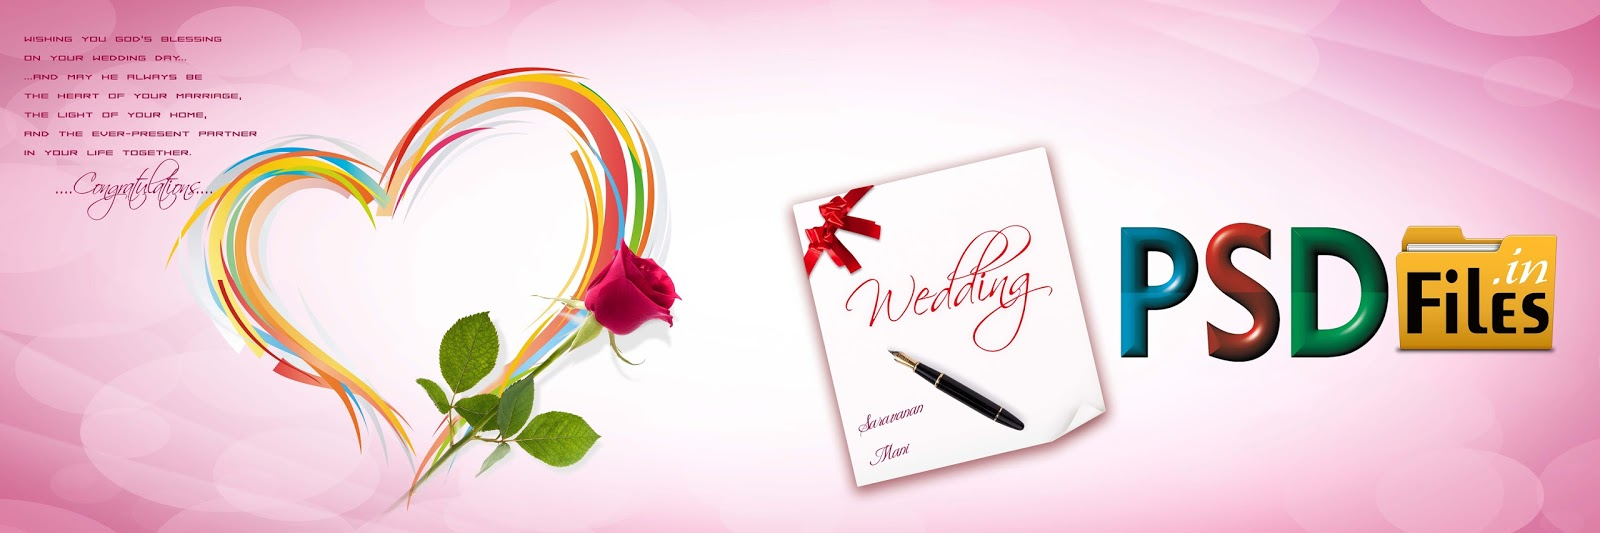 indian wedding album psd templates free downloads ...